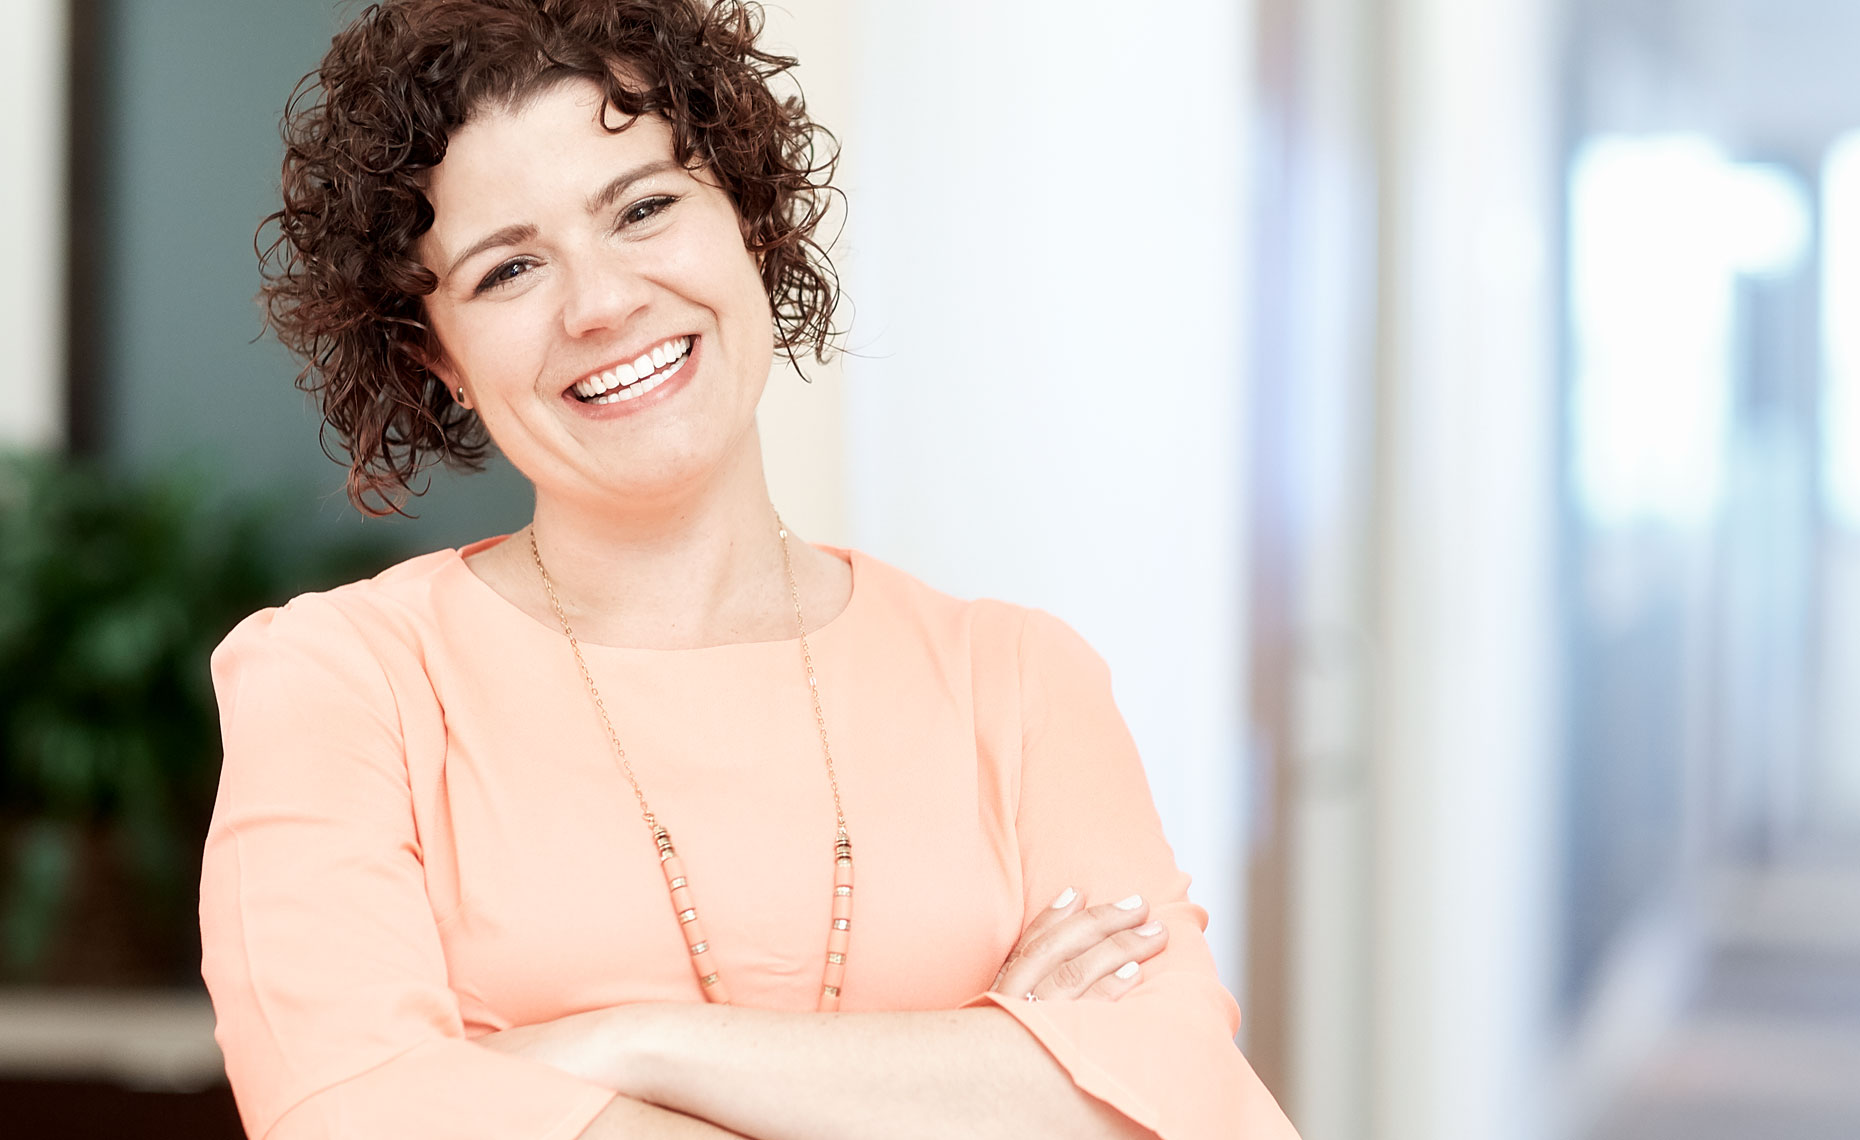 Smiling woman with dark curly hair.